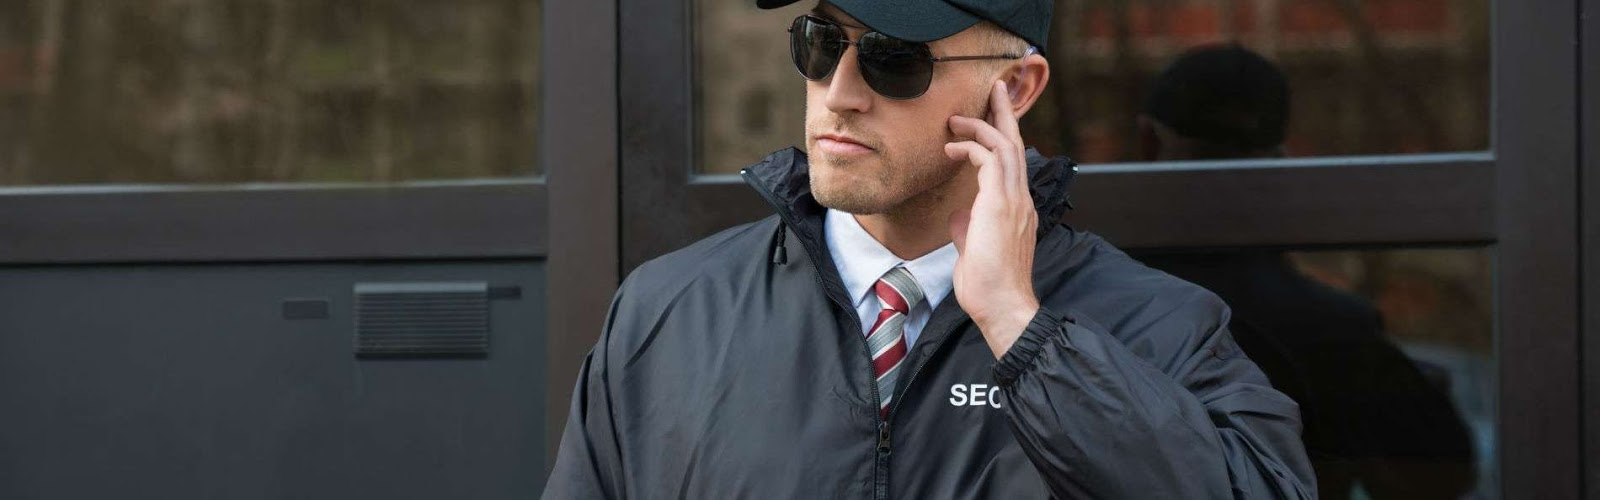 manned guarding service london